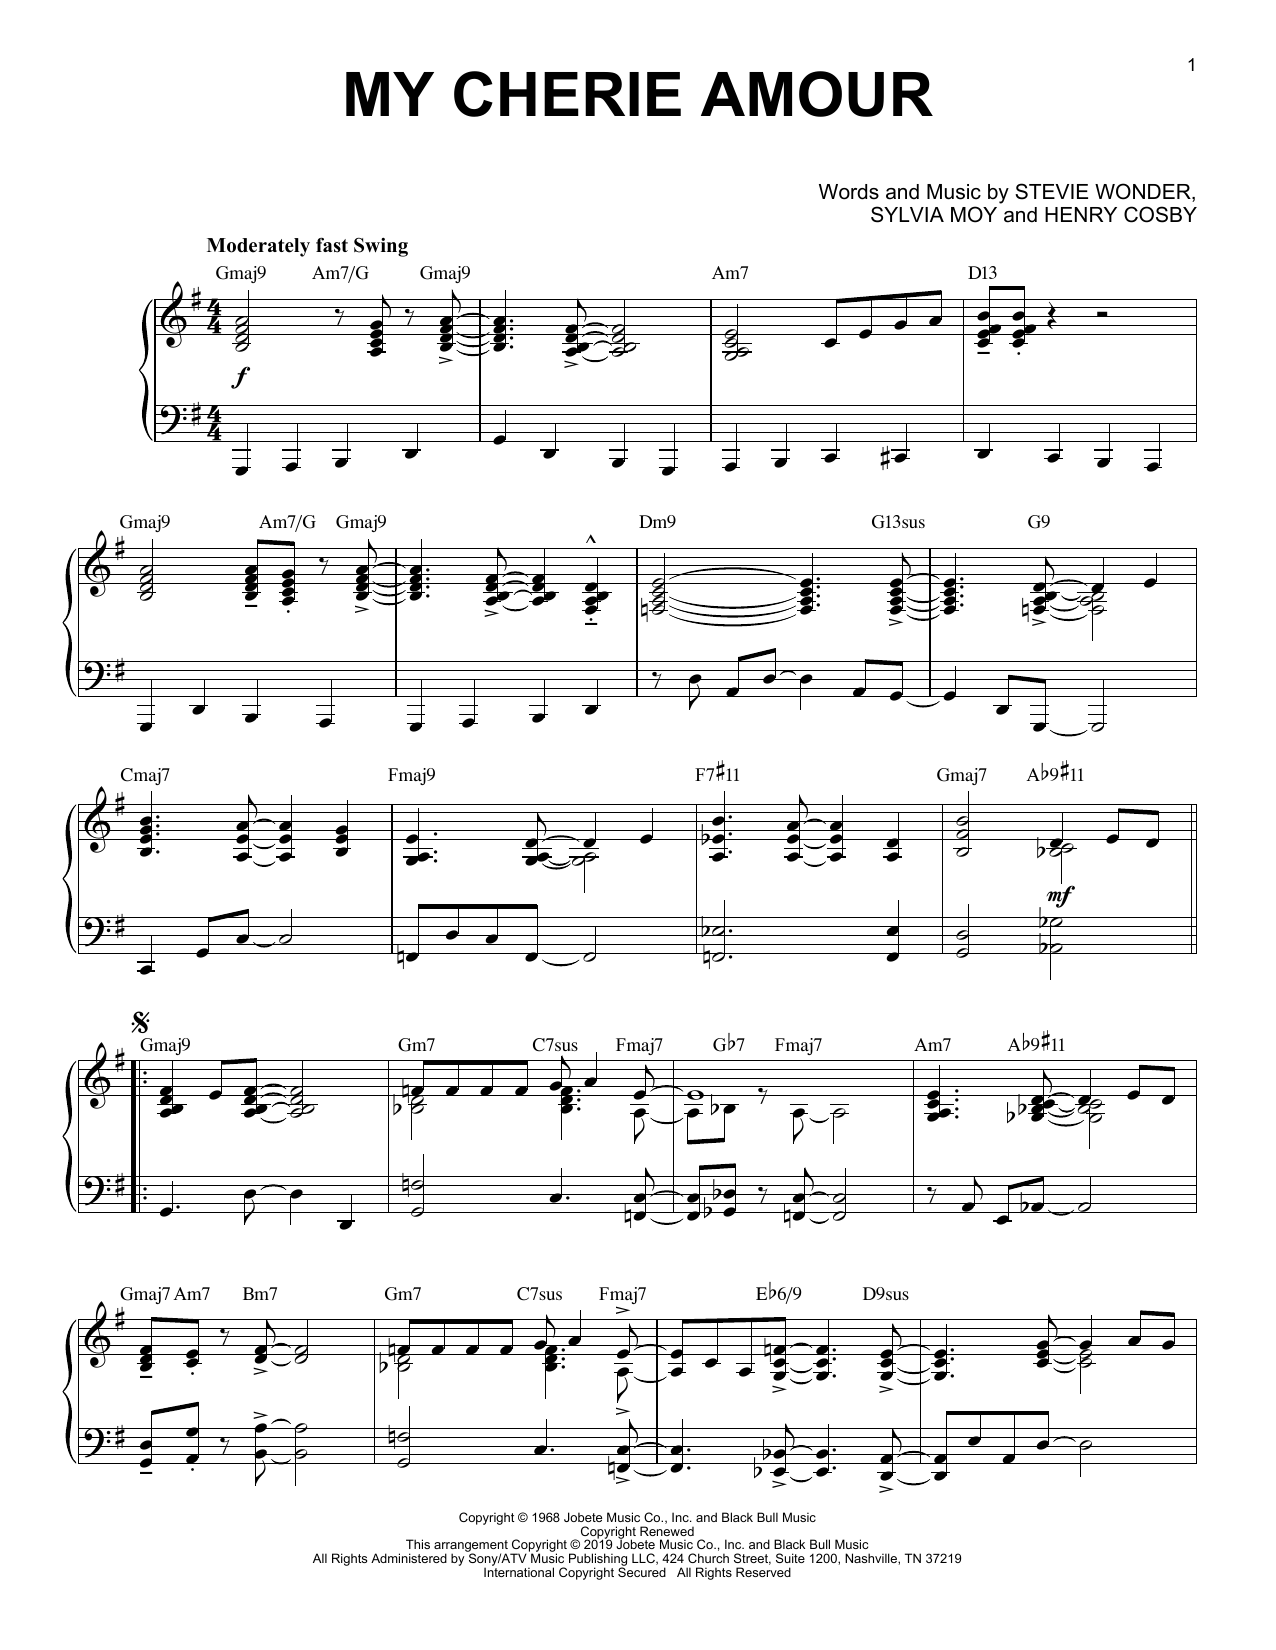 Stevie Wonder My Cherie Amour [Jazz version] sheet music notes and chords